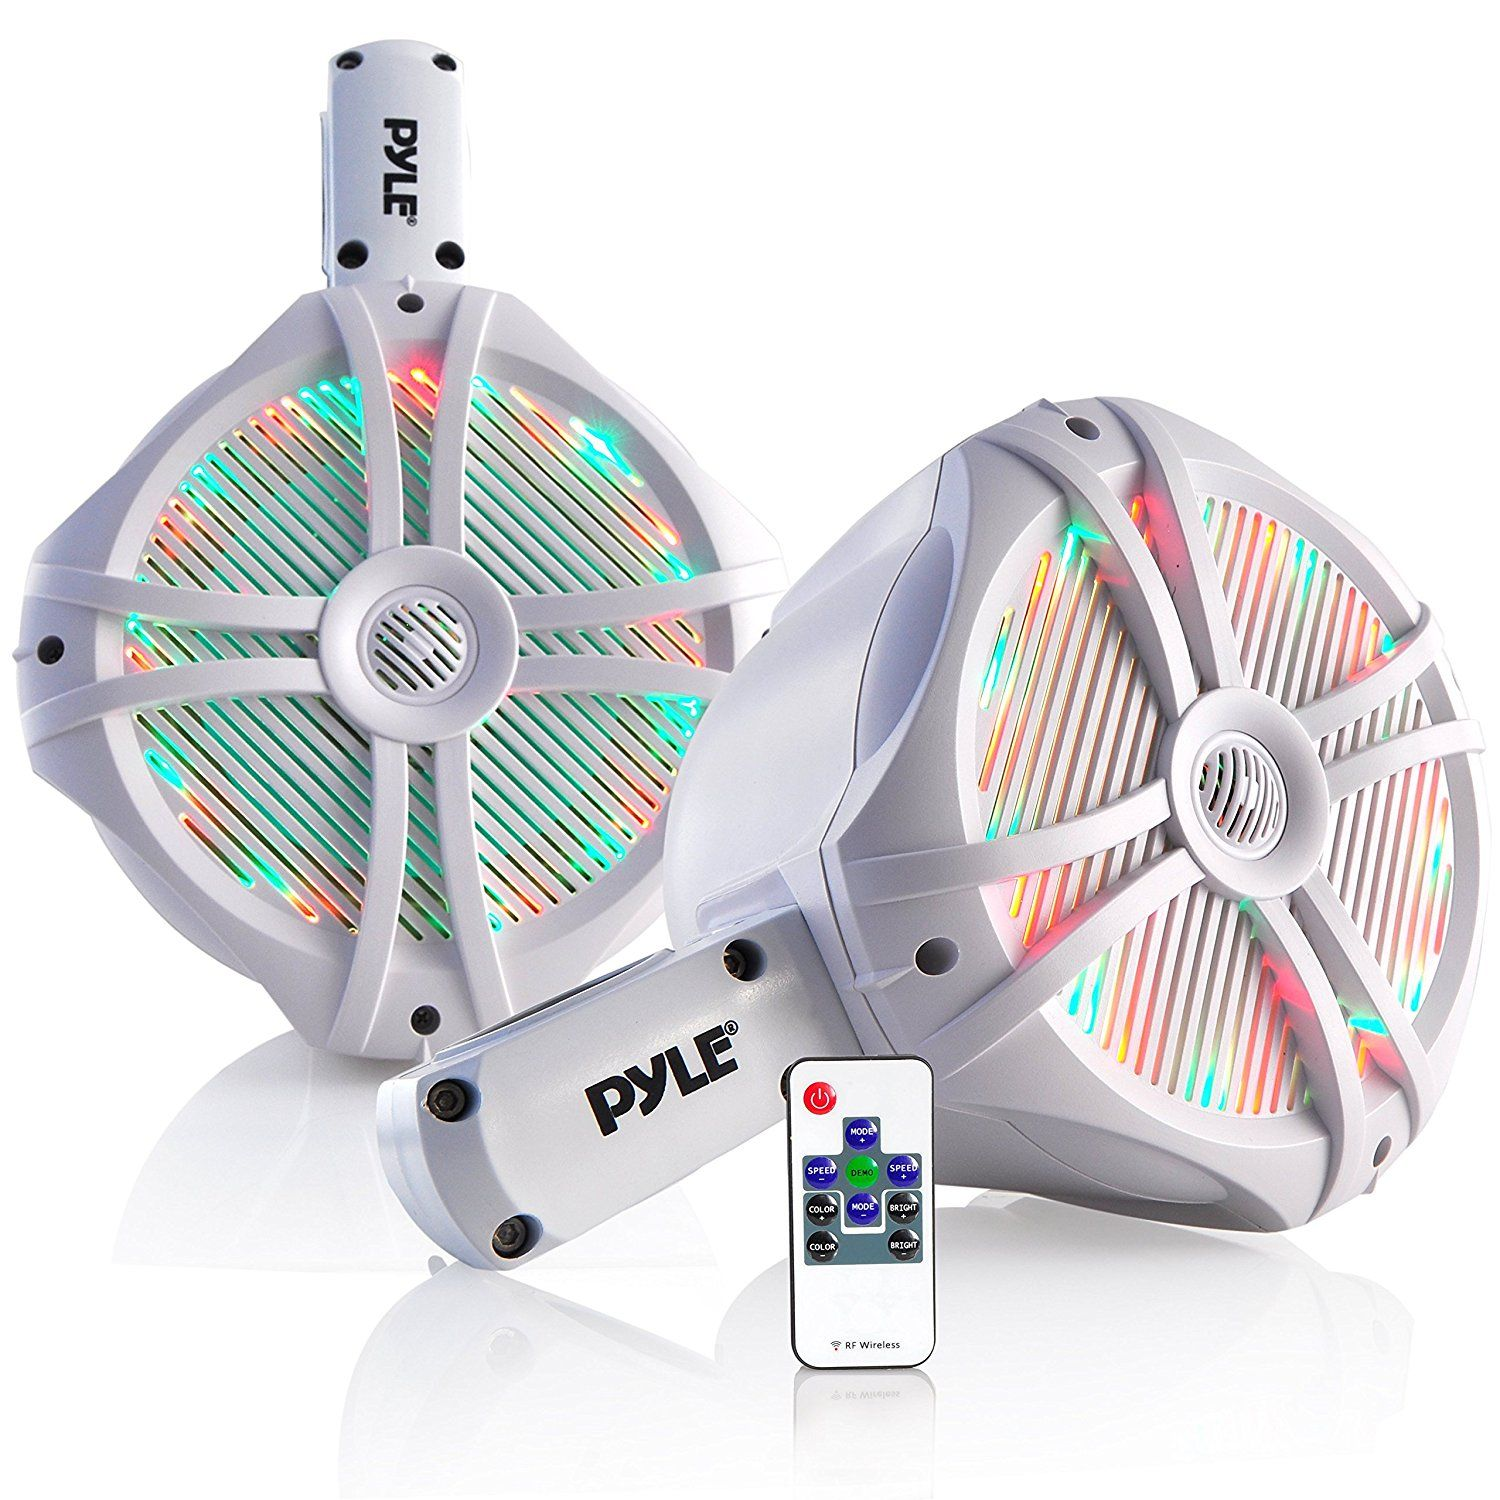 Pyle Plmrwb85lew Hydra Dual Tower Marine Wakeboard Speakers With Programmable Led Lights To View Fu Water Resistant Speaker Tower Speakers Multi Color Led